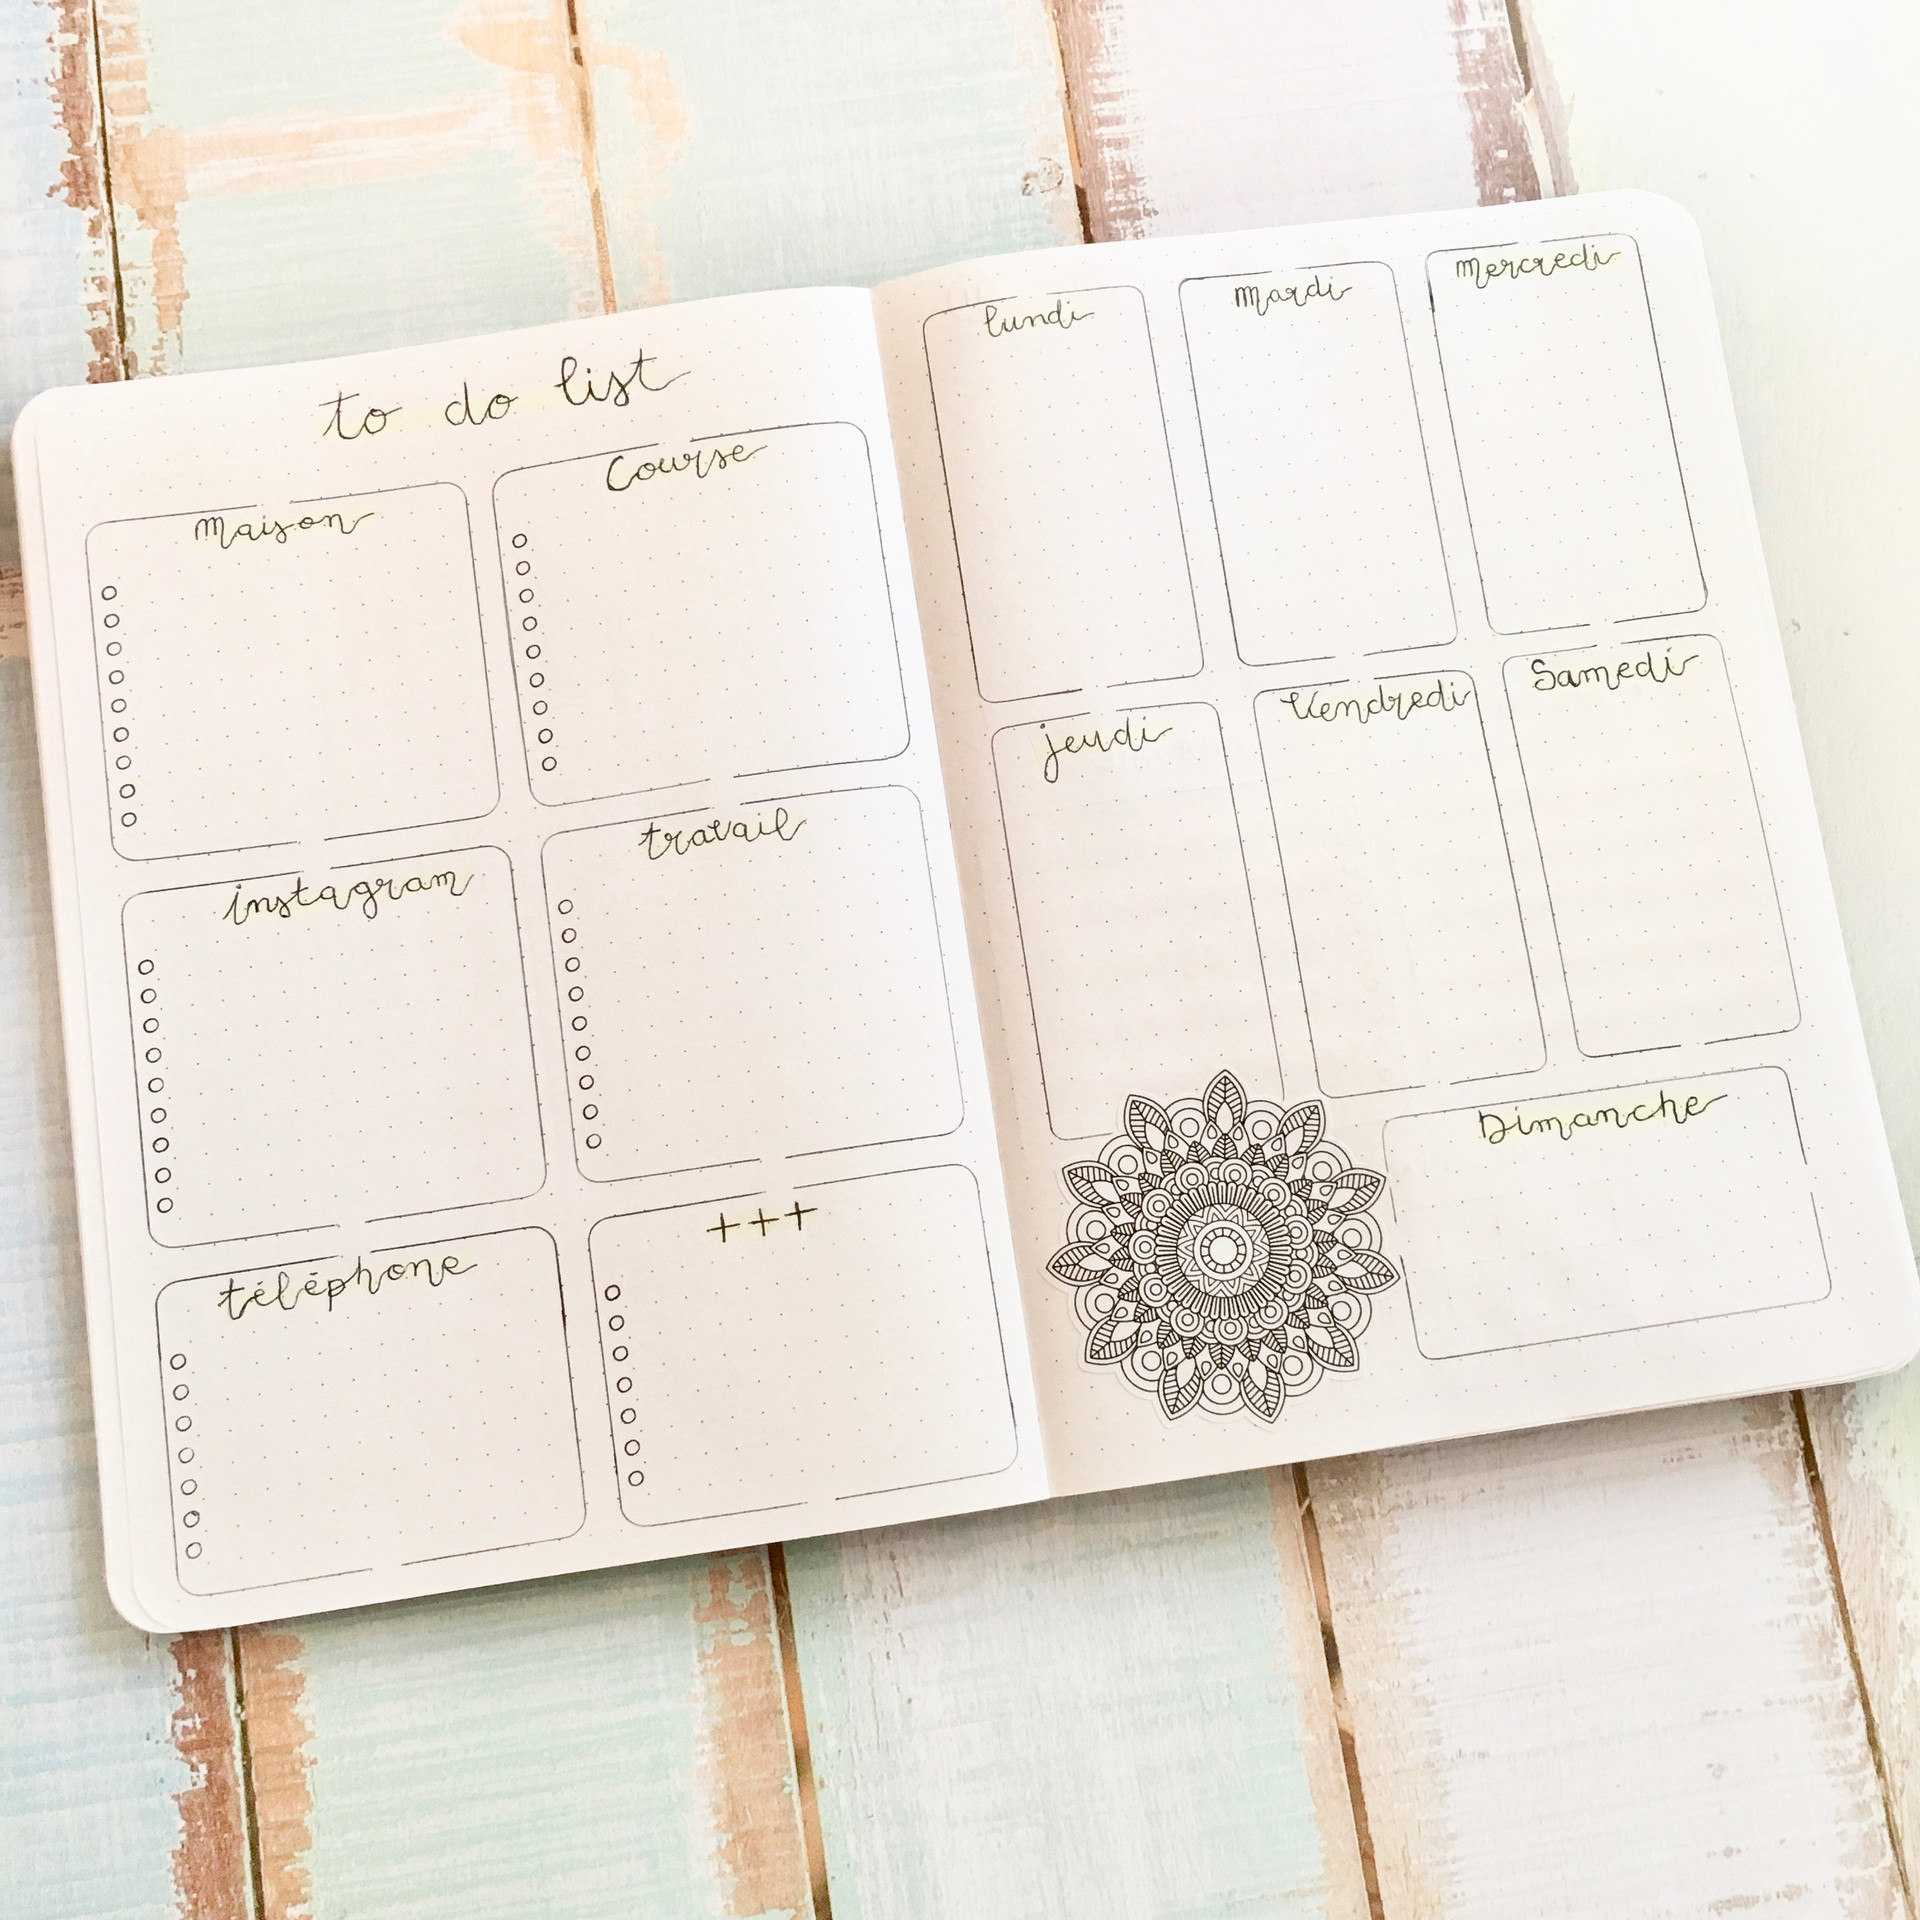 Weekly layout on A5 notebook